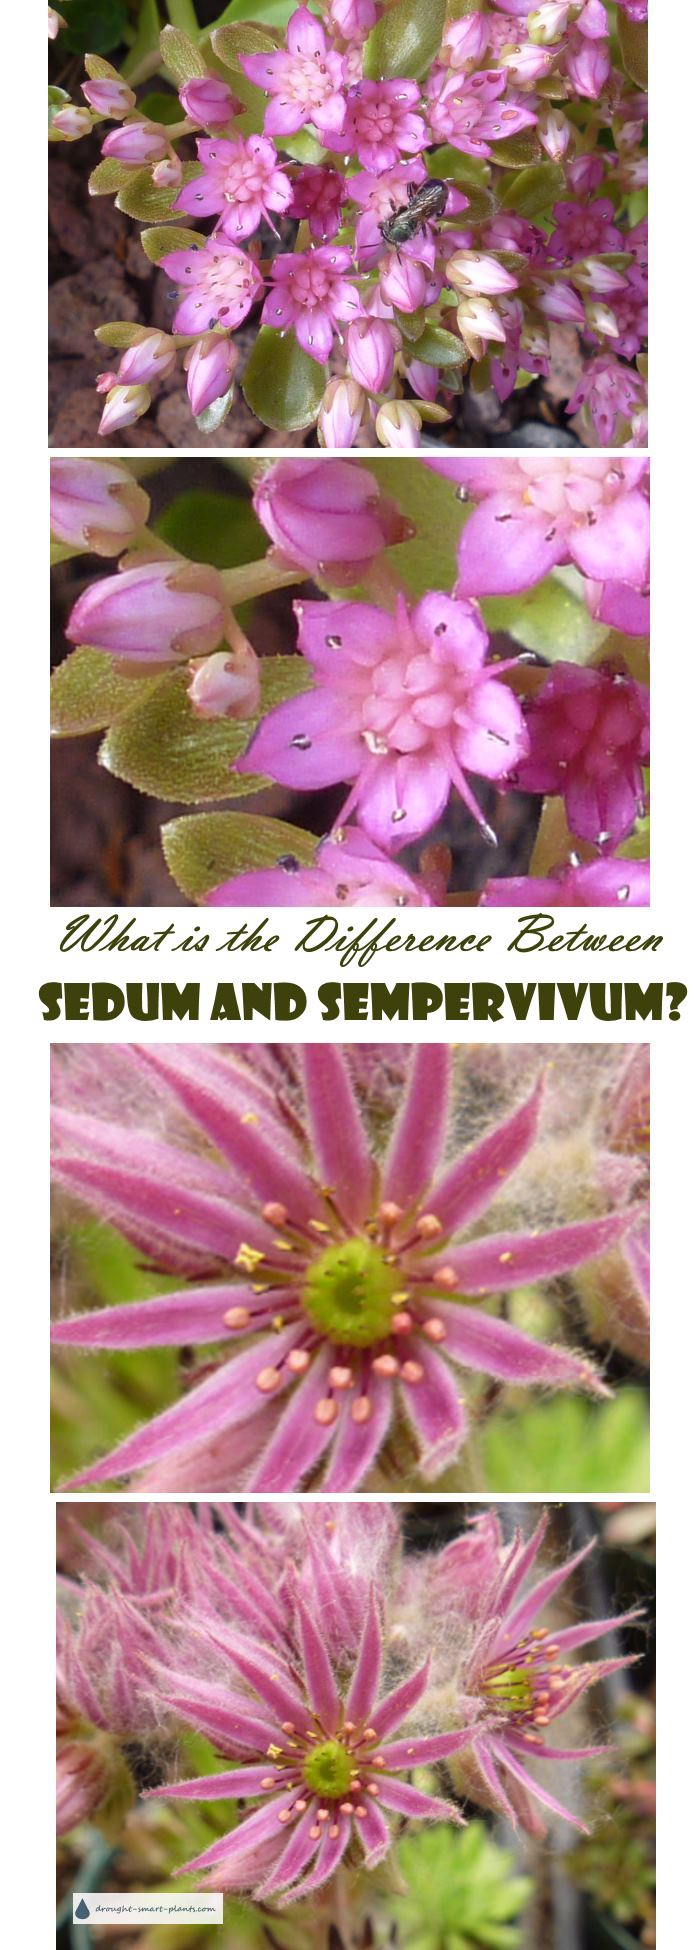 What is the Difference Between Sedum and Sempervivum?